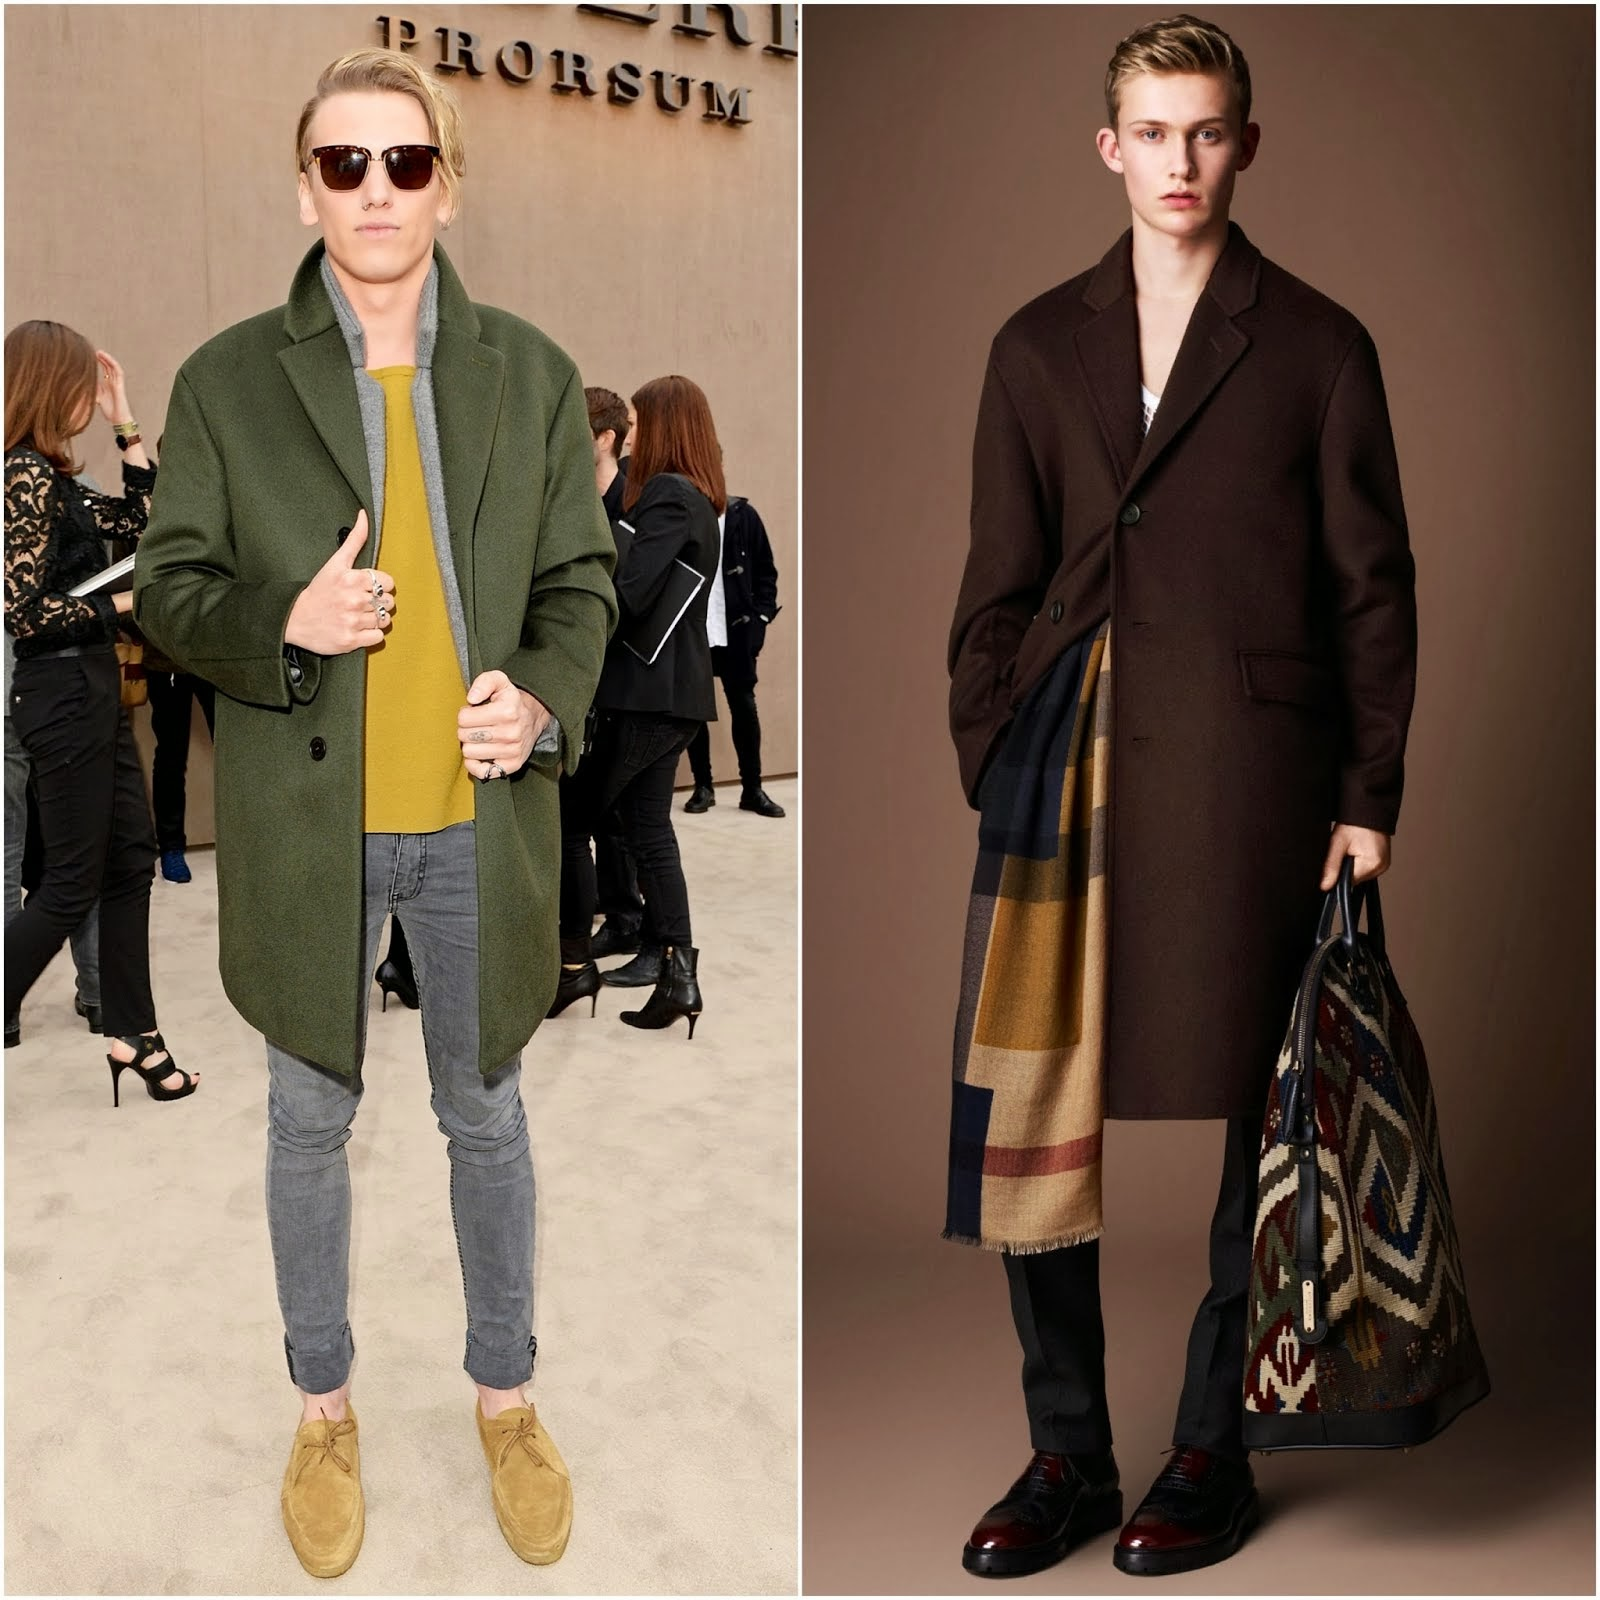 Jamie Campbell Bower and George Craig in Burberry - Burberry Prorsum Fall Winter 2014, London Collections #LCM